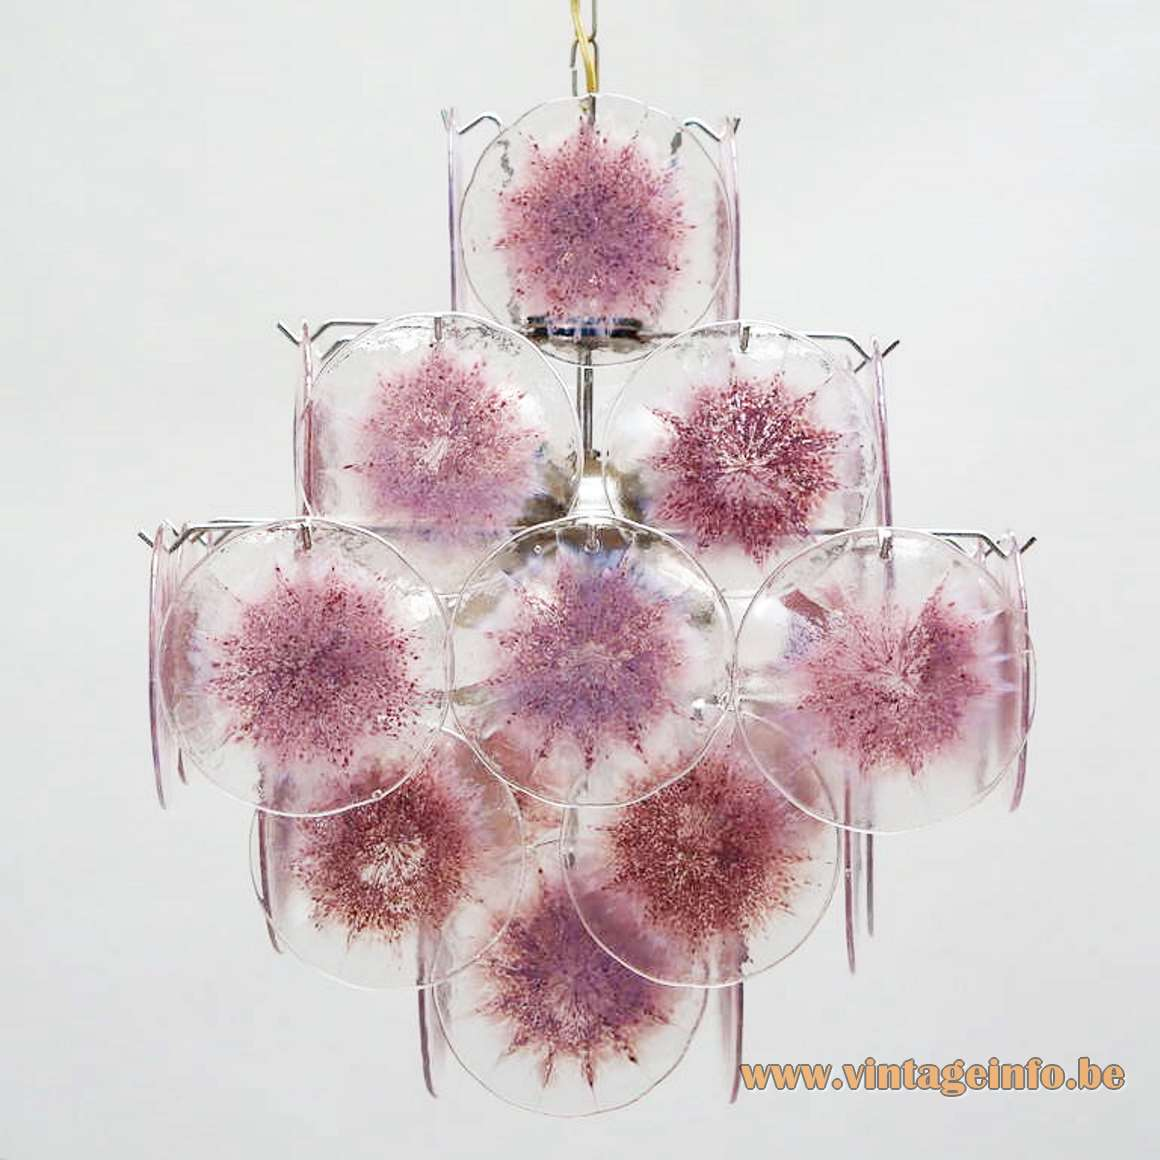 36 Discs Murano Chandelier purple and clear hand blown glass AV Mazzega Vistosi 1950s 1960s 1970s